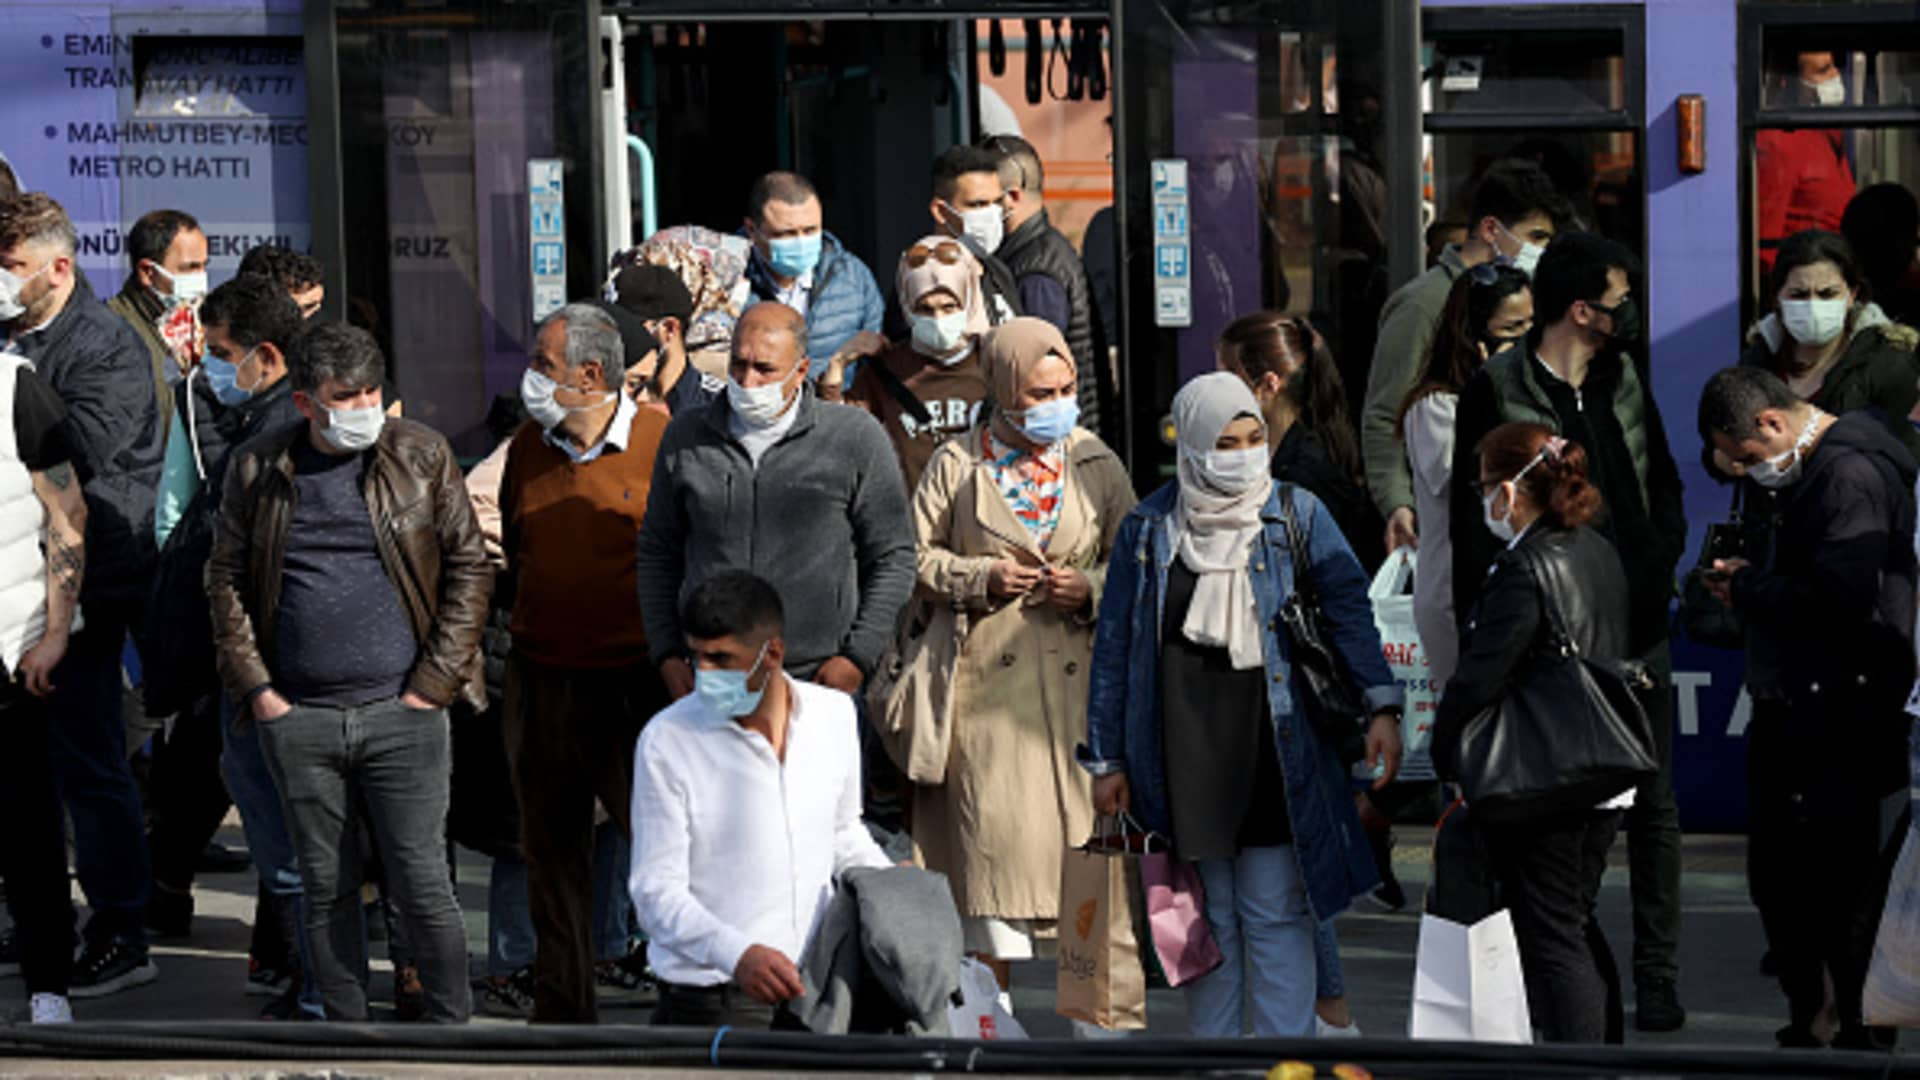 ISTANBUL, TURKEY - APRIL 29: People wait in a queue at Cevizlibag district to get on metrobuses and trams to return their homes ahead of full lockdown from Thursday evening until May 17 to stem the spread of coronavirus in Istanbul, Turkey on April 29, 2021. (Photo by Isa Terli/Anadolu Agency via Getty Images)